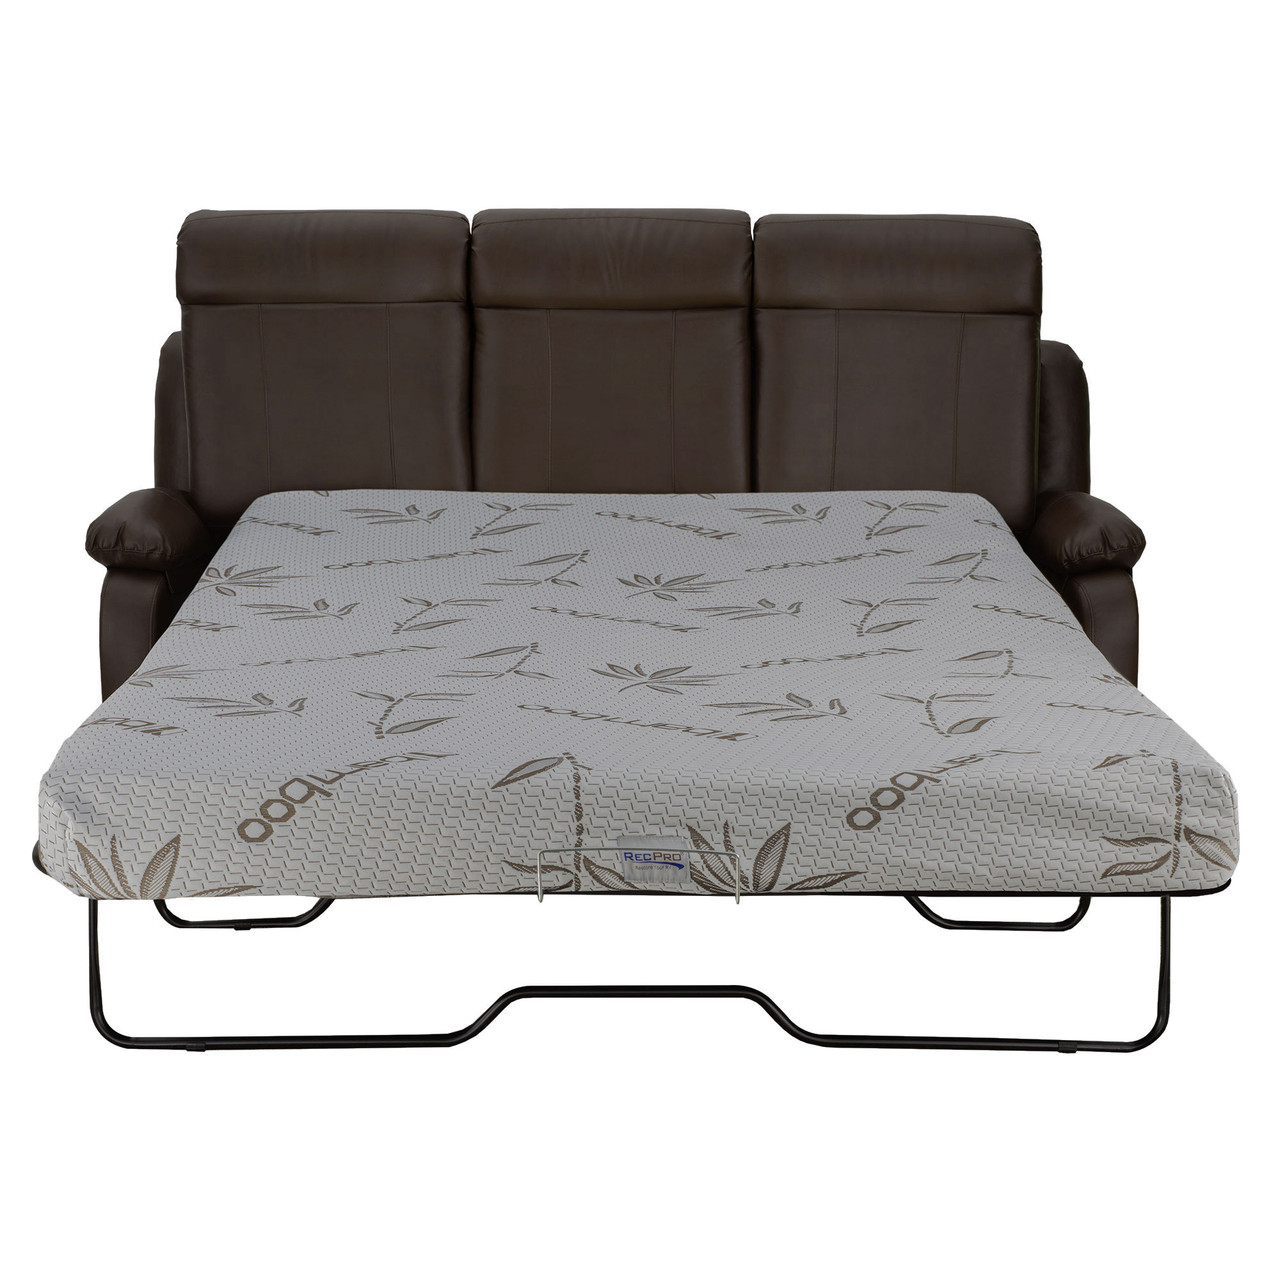 Recpro Charles 80 Rv Sleeper Sofa With Hide A Bed Recpro